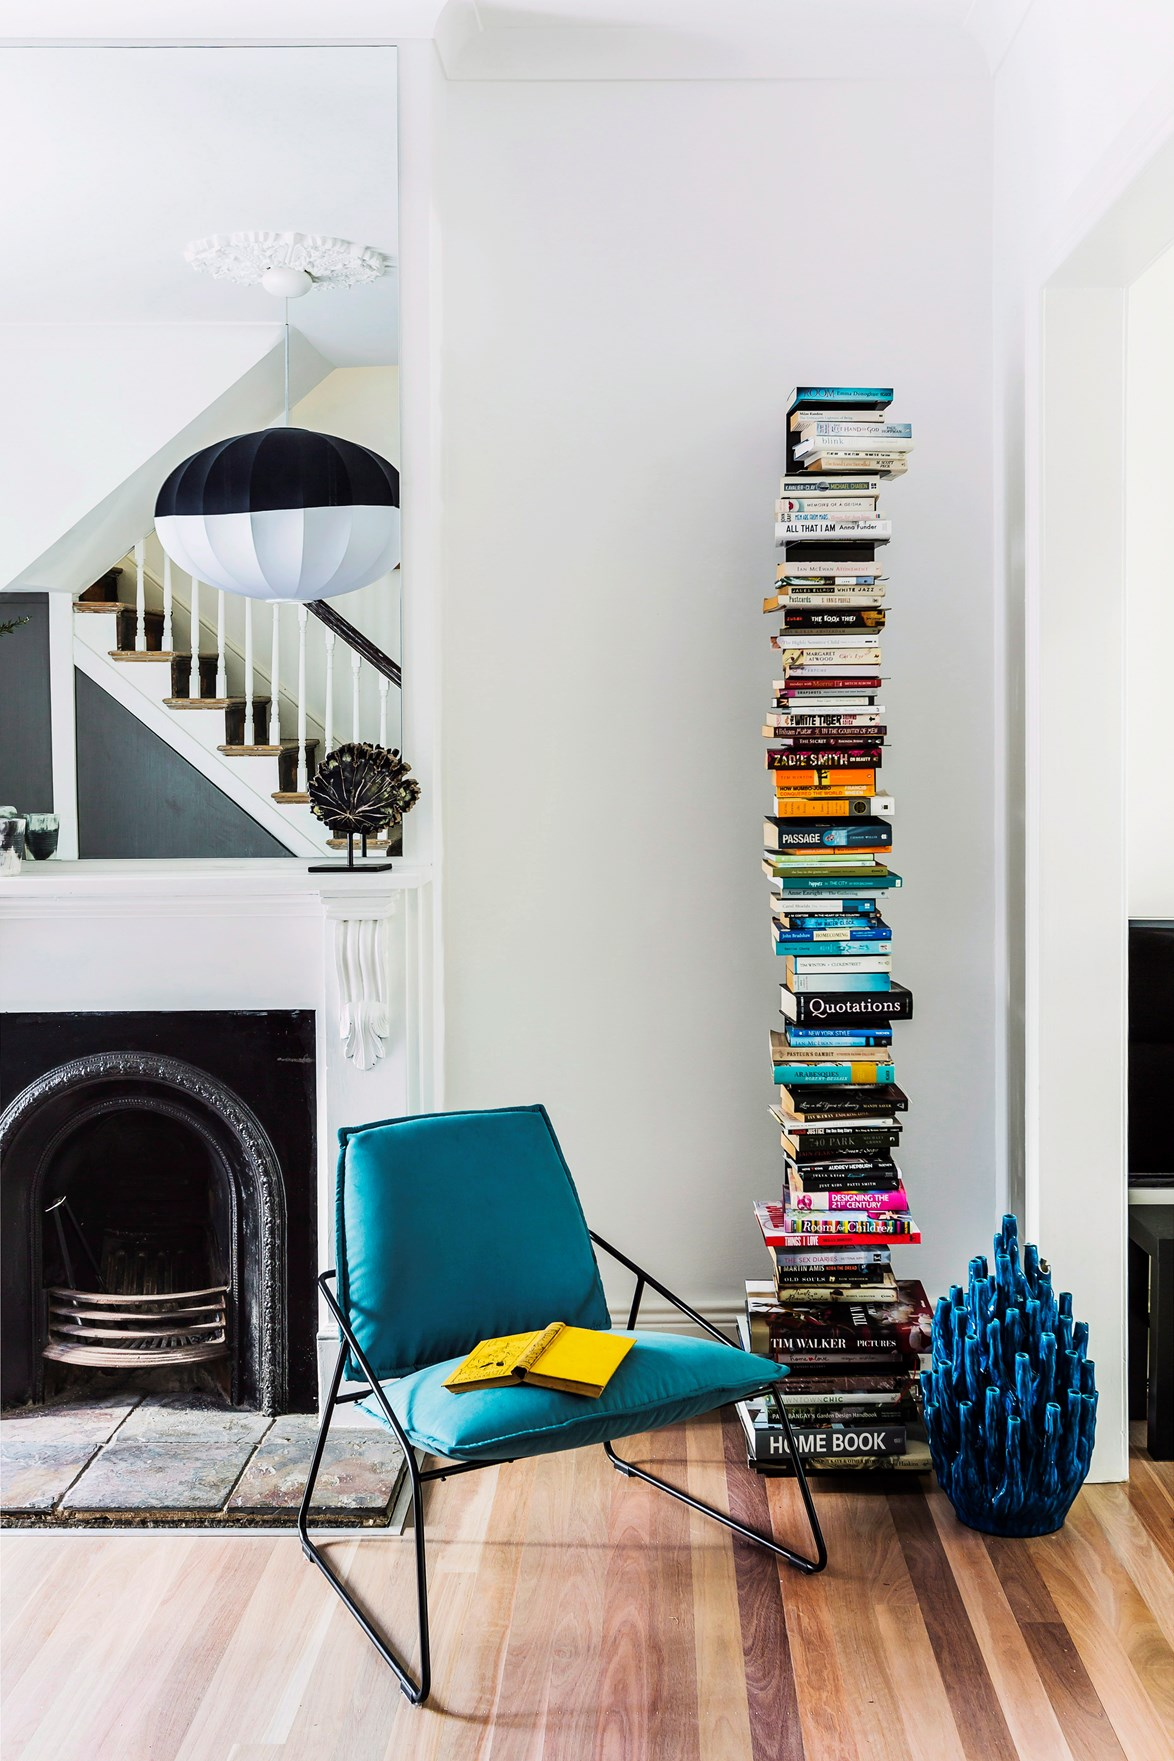 **Stack and store upwards.** Stack books and tomes one on top of the other to create a functional and show-stopping storage feature. A contemporary and elegant solution for any small space.